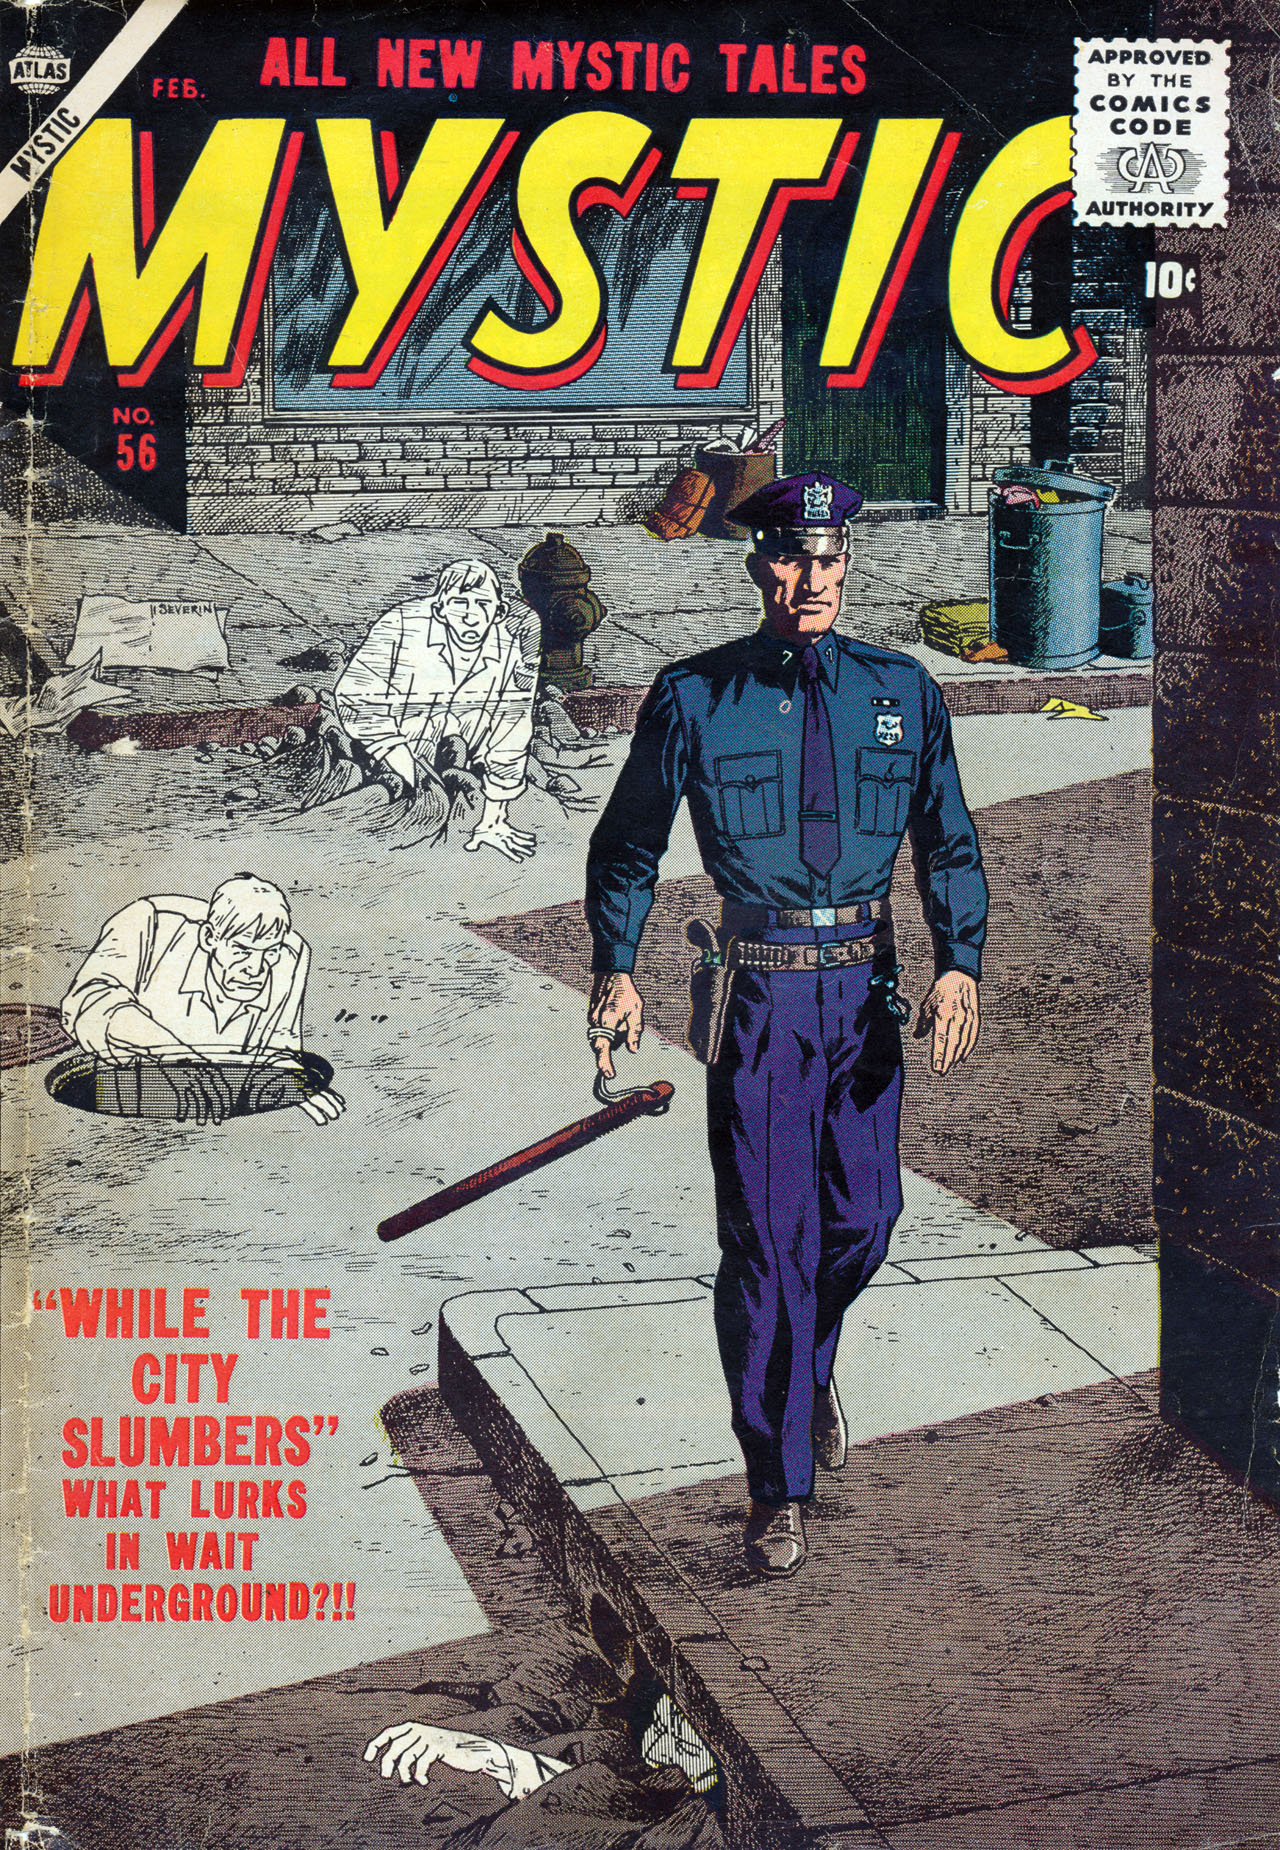 Mystic (1951) #56, cover by John Severin.